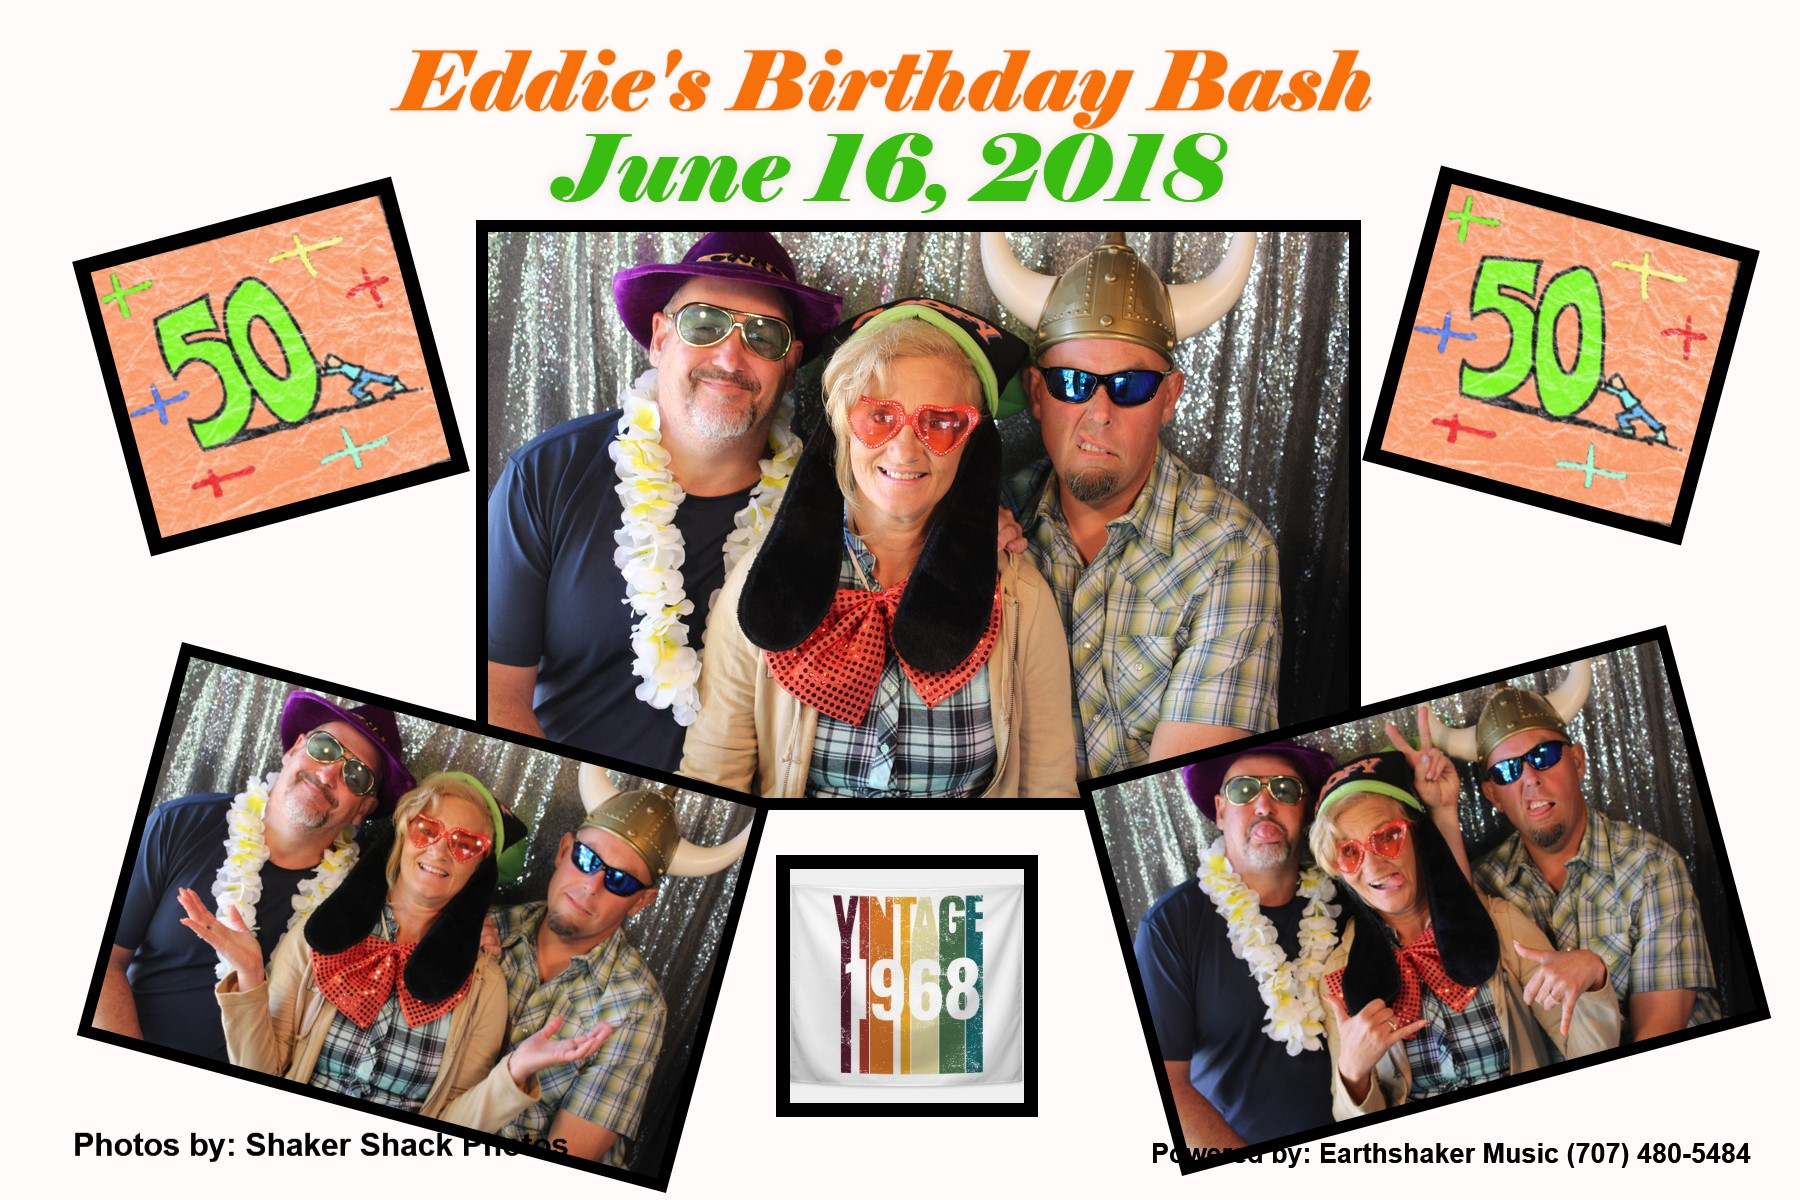 Eddie's 50th birthday